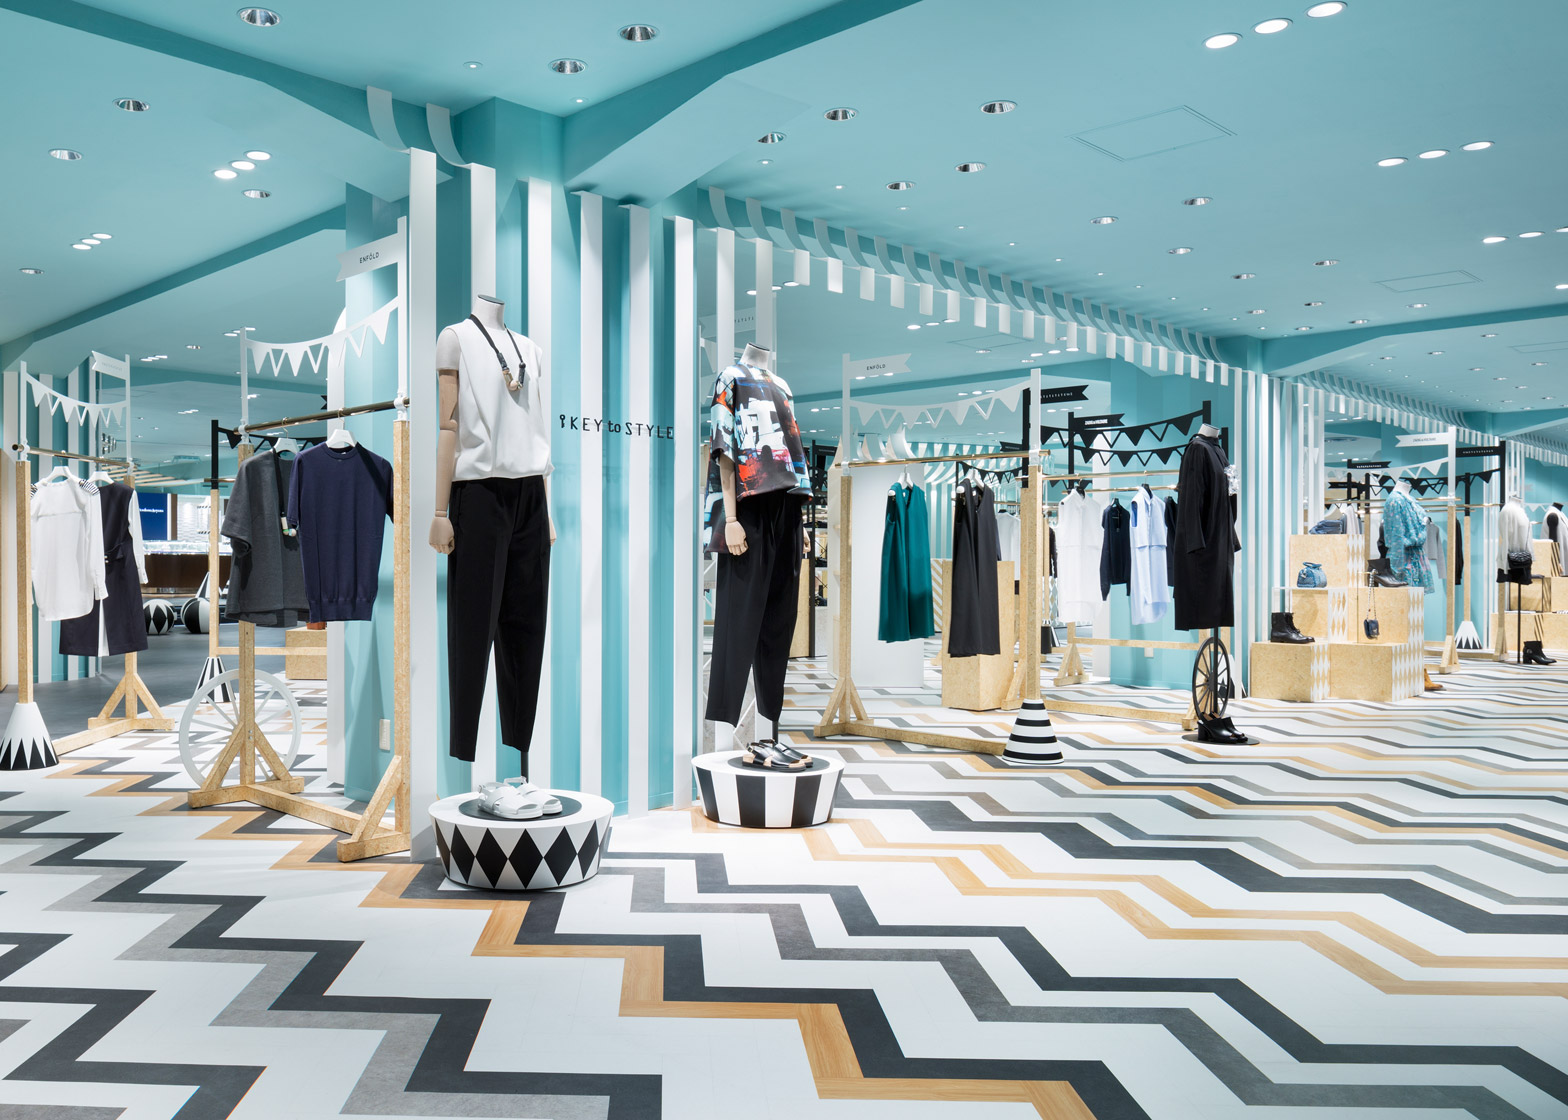 Nendo overhauls womenswear and hat departments at Seibu Shibuya department store in Japan